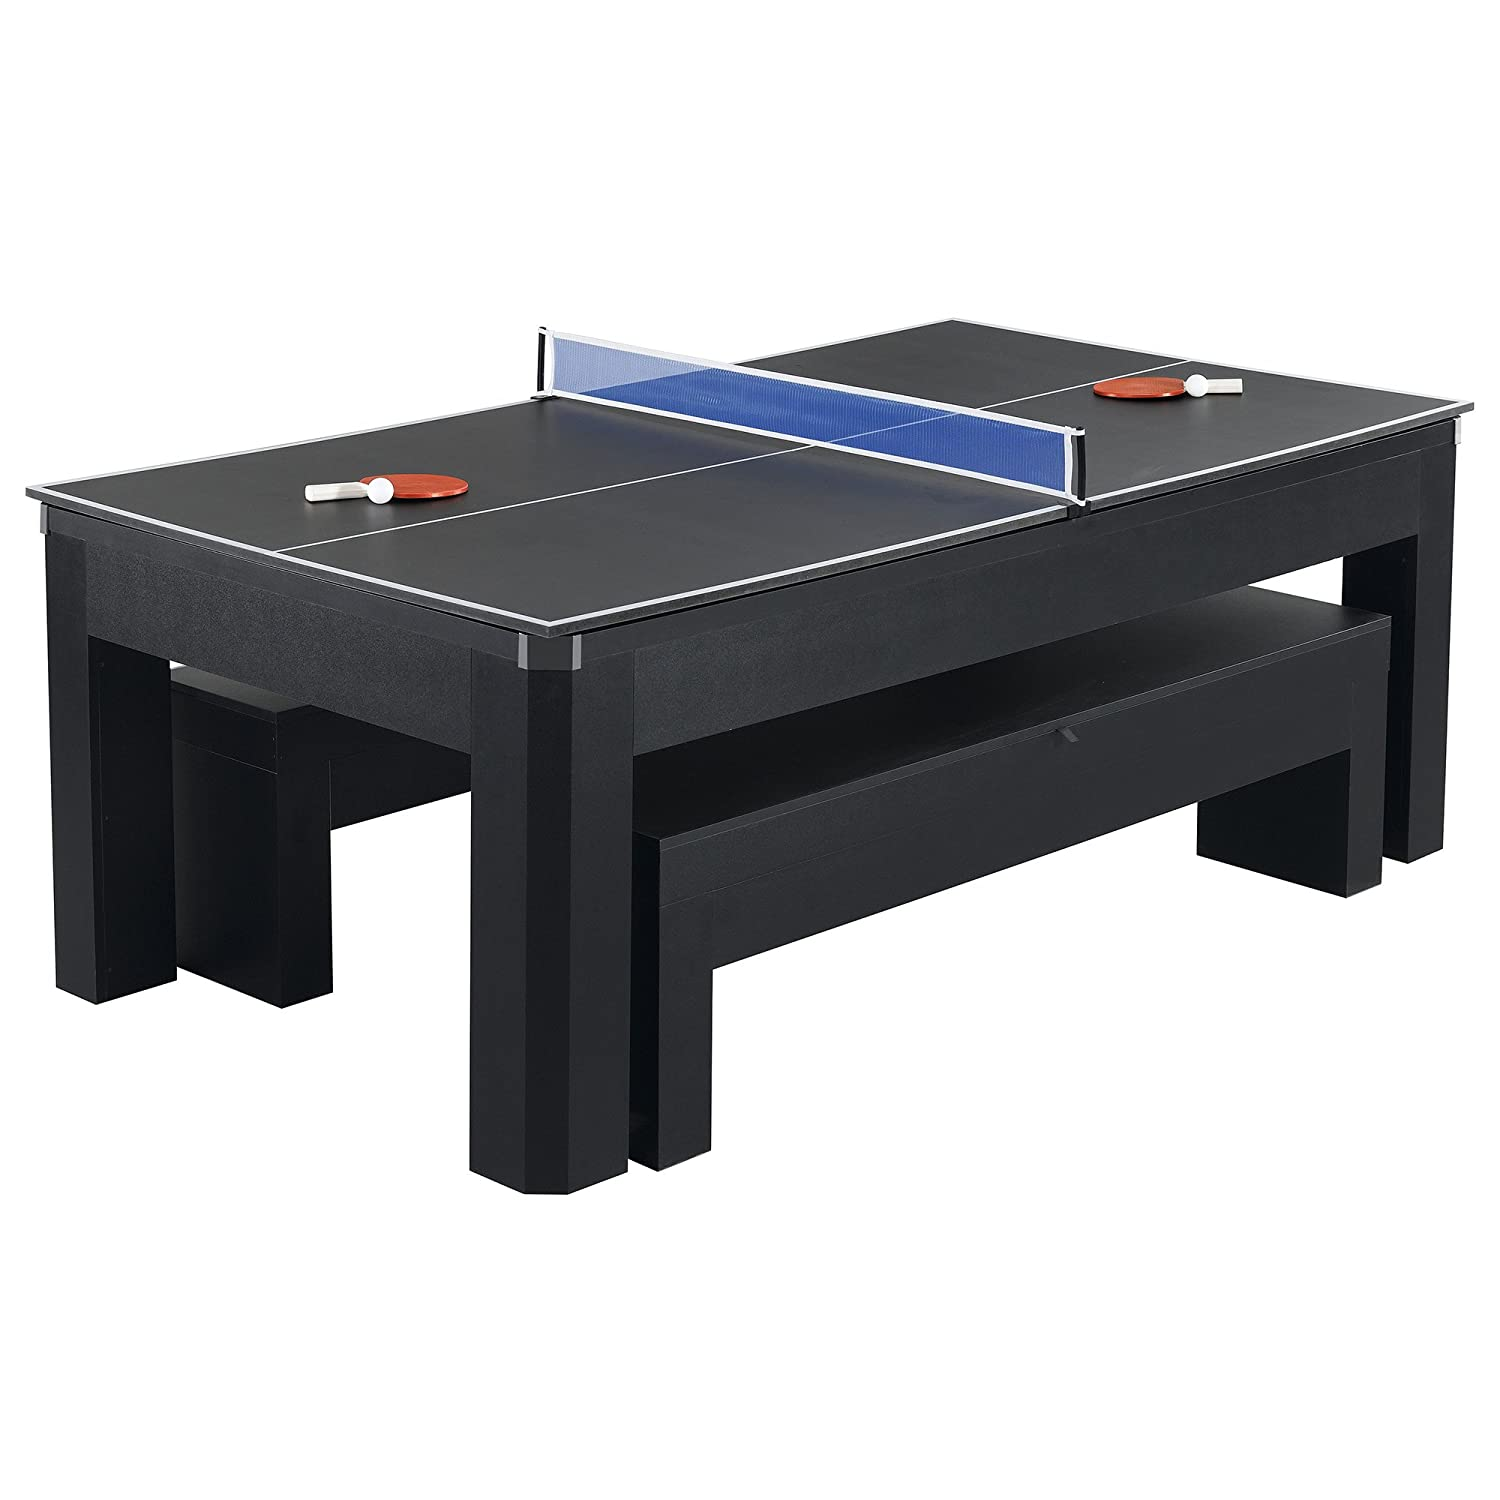 Amazoncom Hathaway Park Avenue Pool Table Tennis Combination - Free ping pong table craigslist